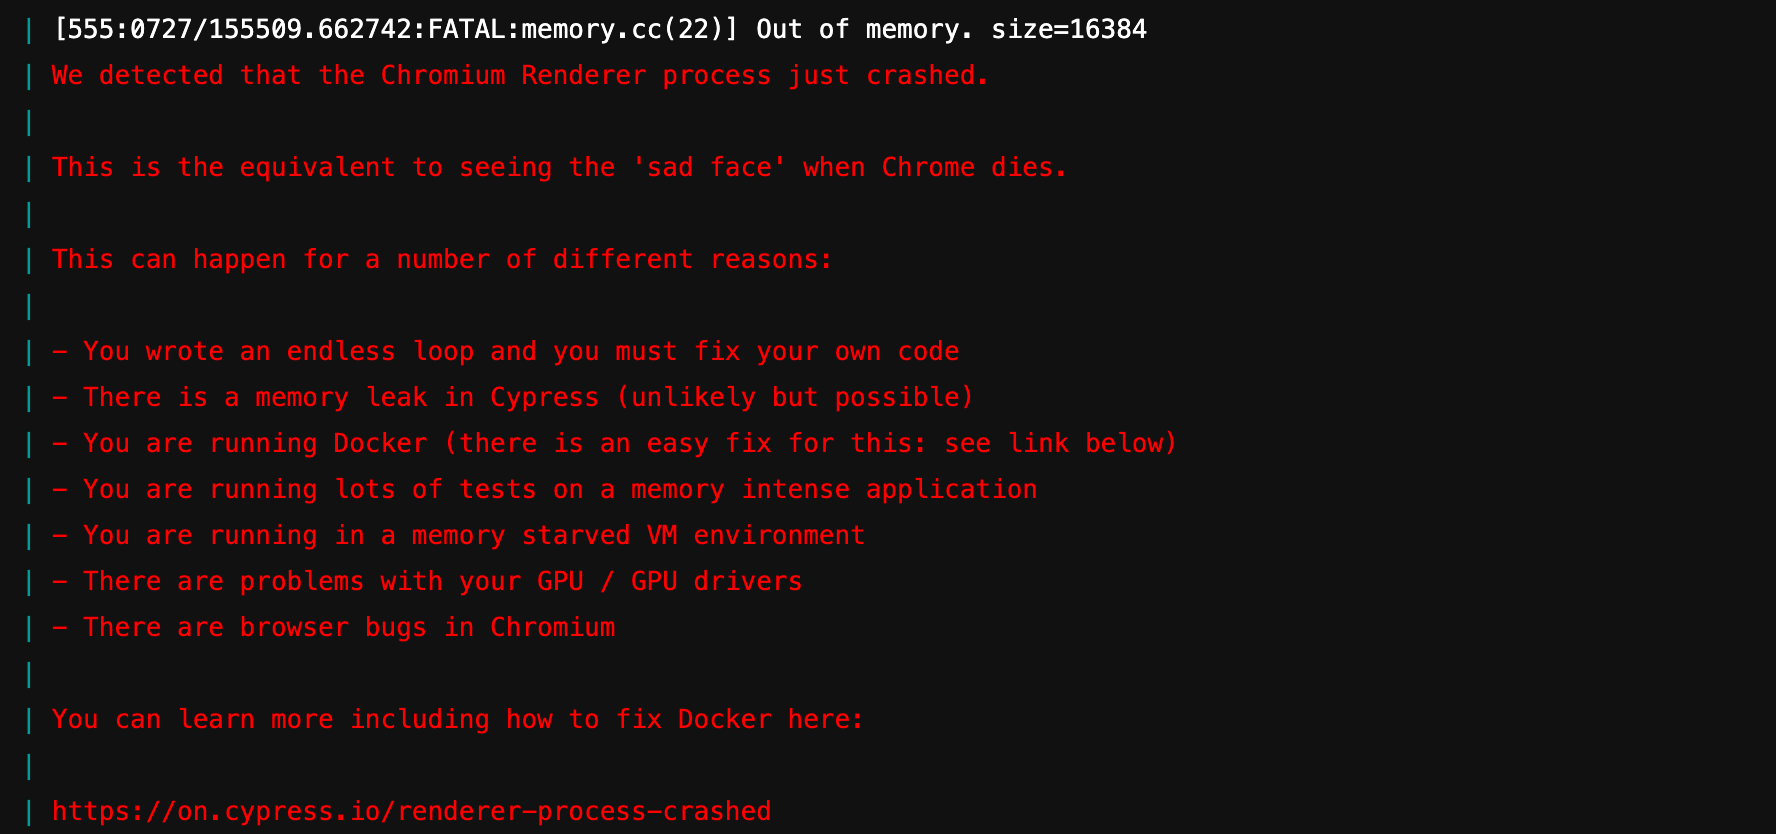 cypress crashing due to out of memory